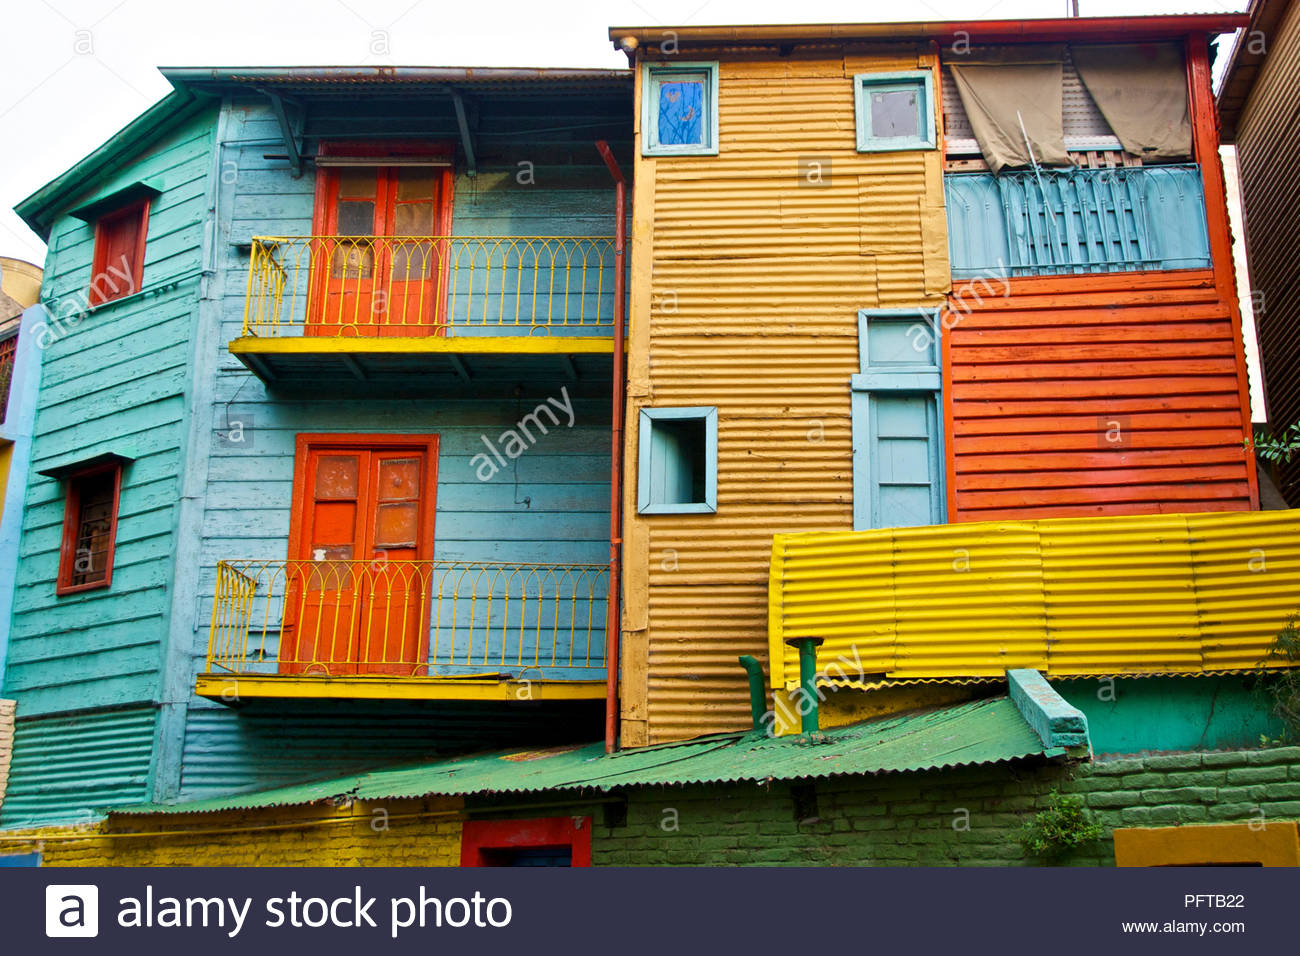 South America, colourful painted houses lining El Caminito, street in La Boca district, Buenos Aires, Argentina - Stock Image